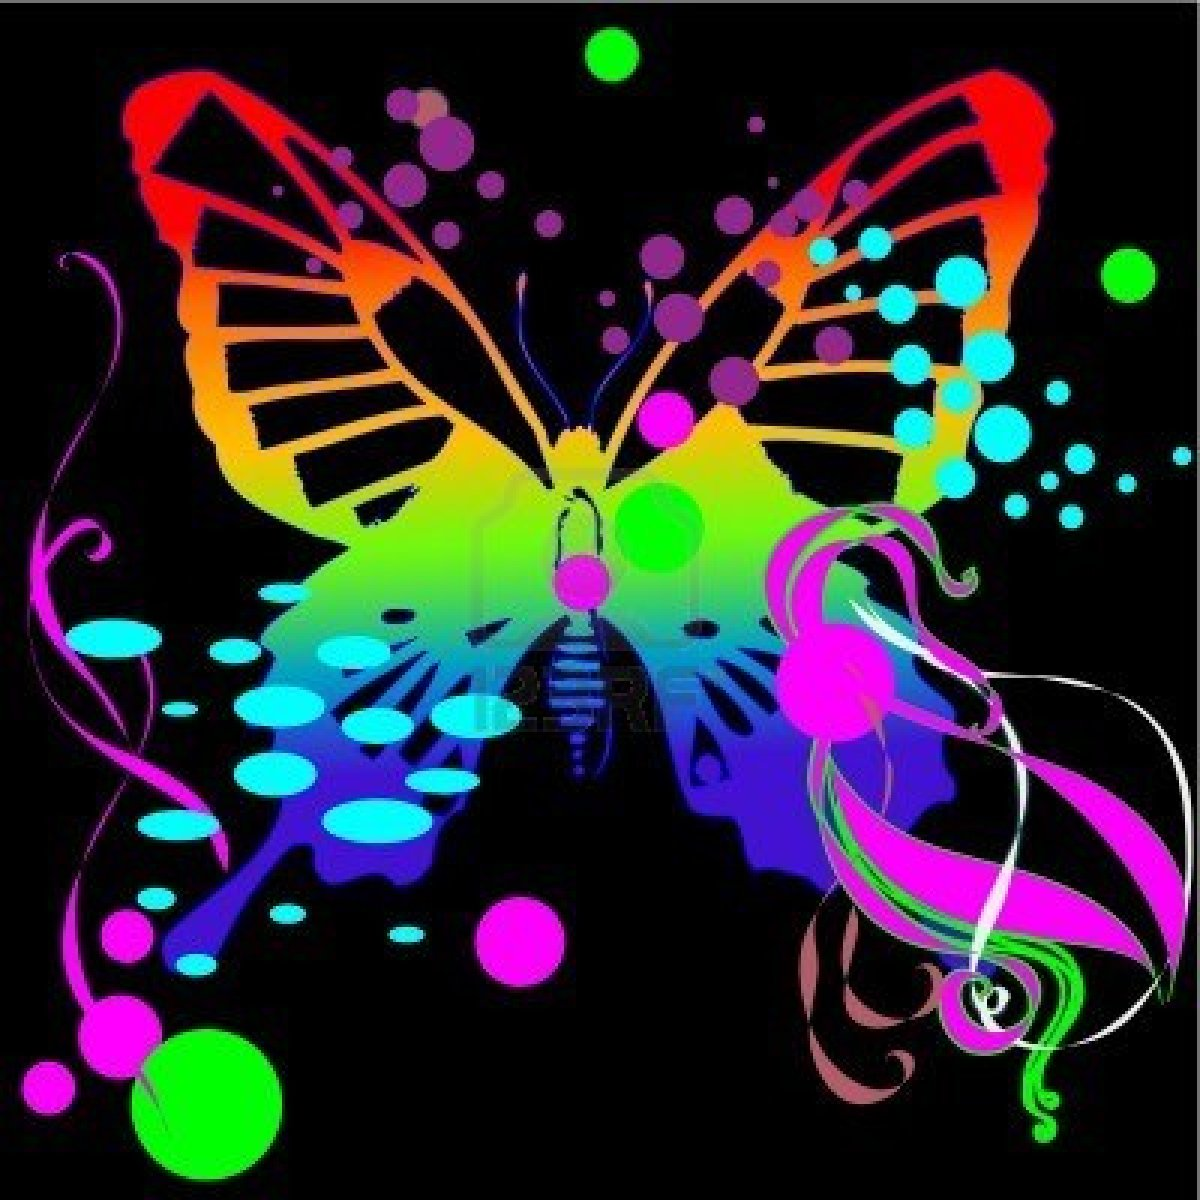 Displaying 9 Images For   Neon Butterfly Backgrounds 1200x1200